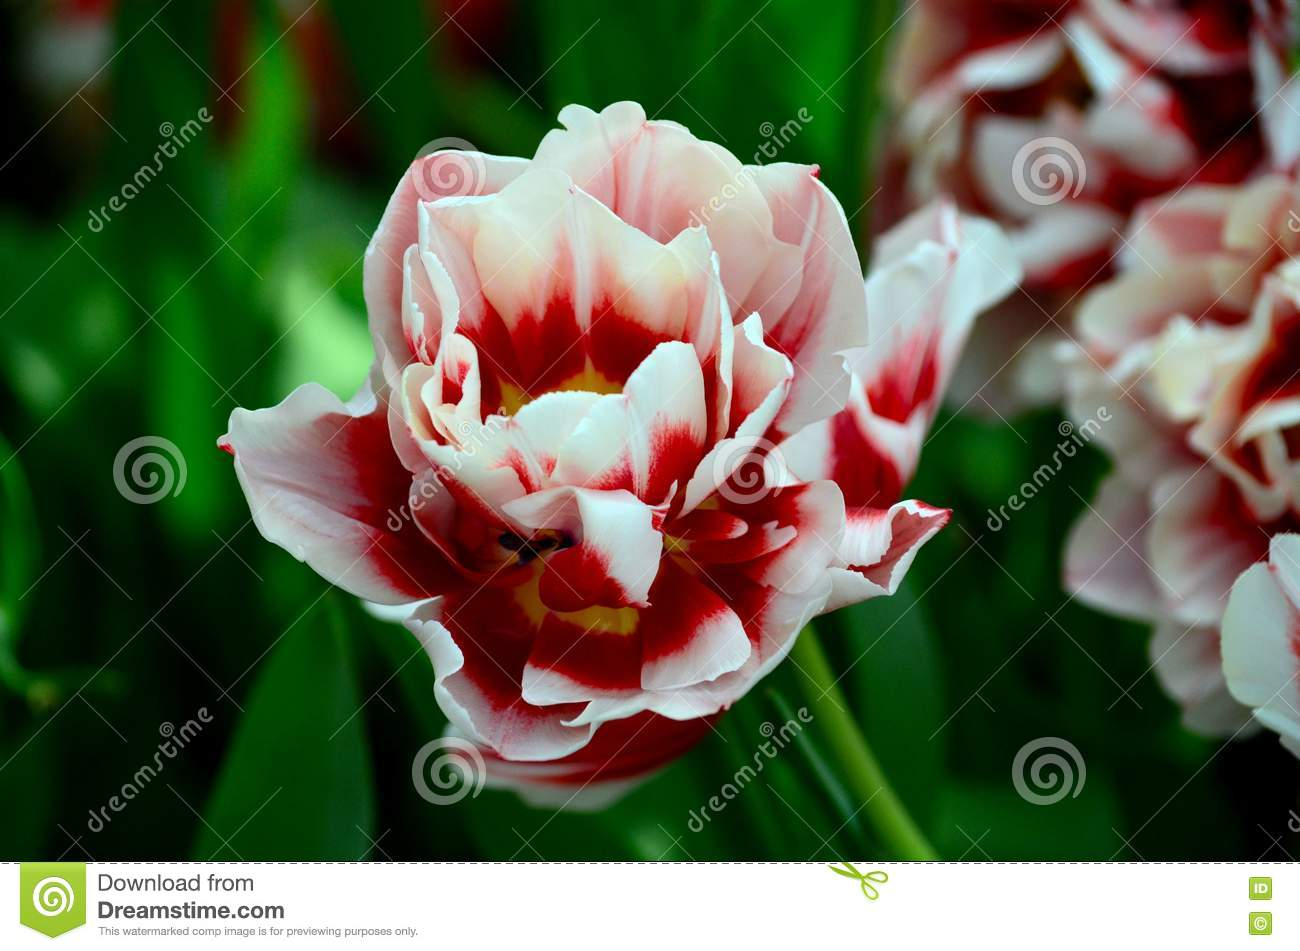 Close Up Macro Of Blood Red And White Colored Flower Stock Photo